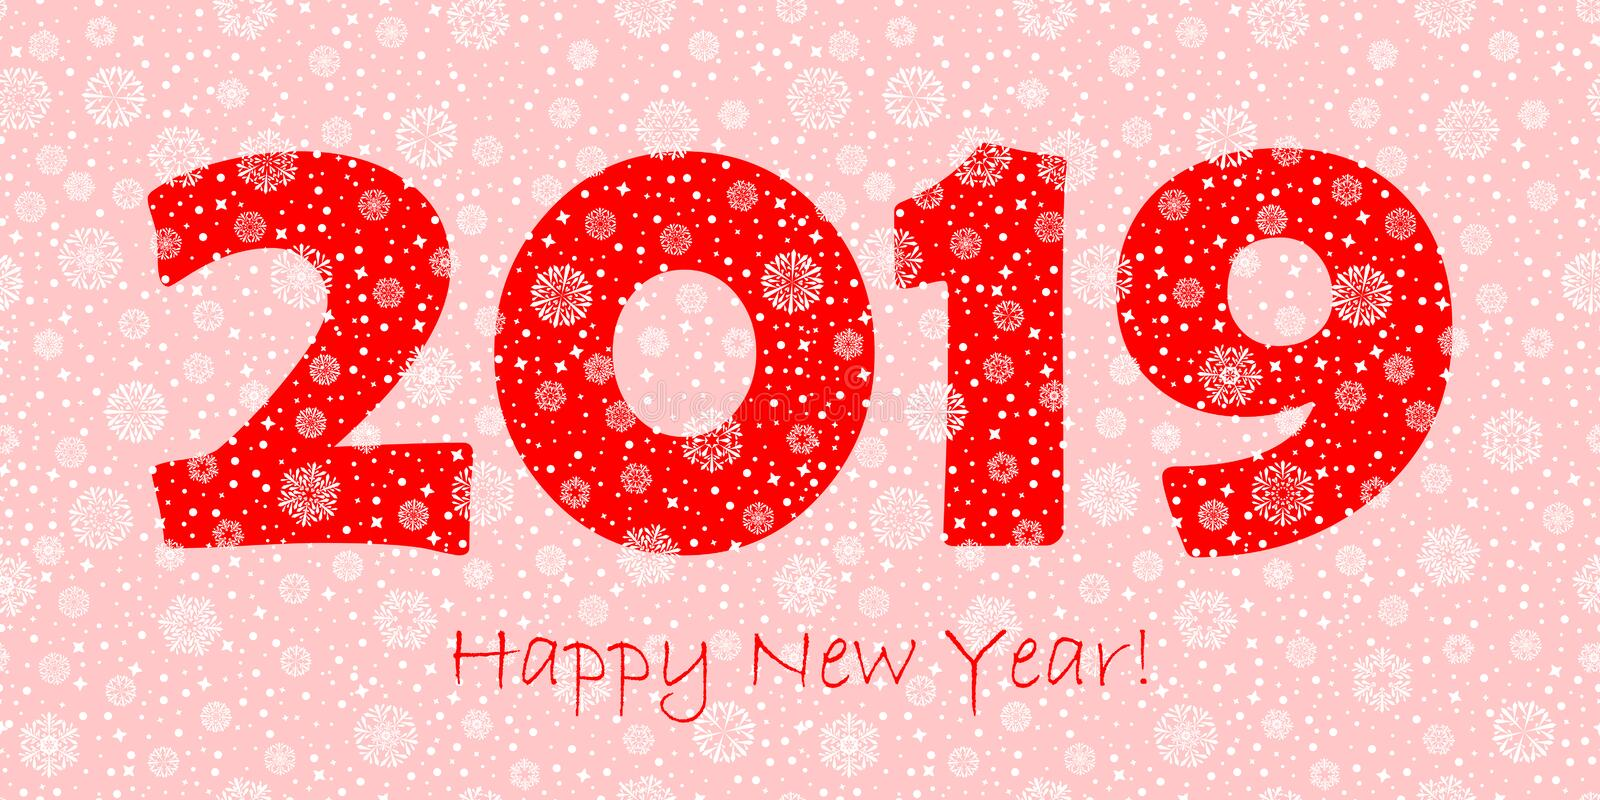 2019 happy new year greeting card. red text on pink background. white snowflakes dots and stars. vector illustration royalty free illustration